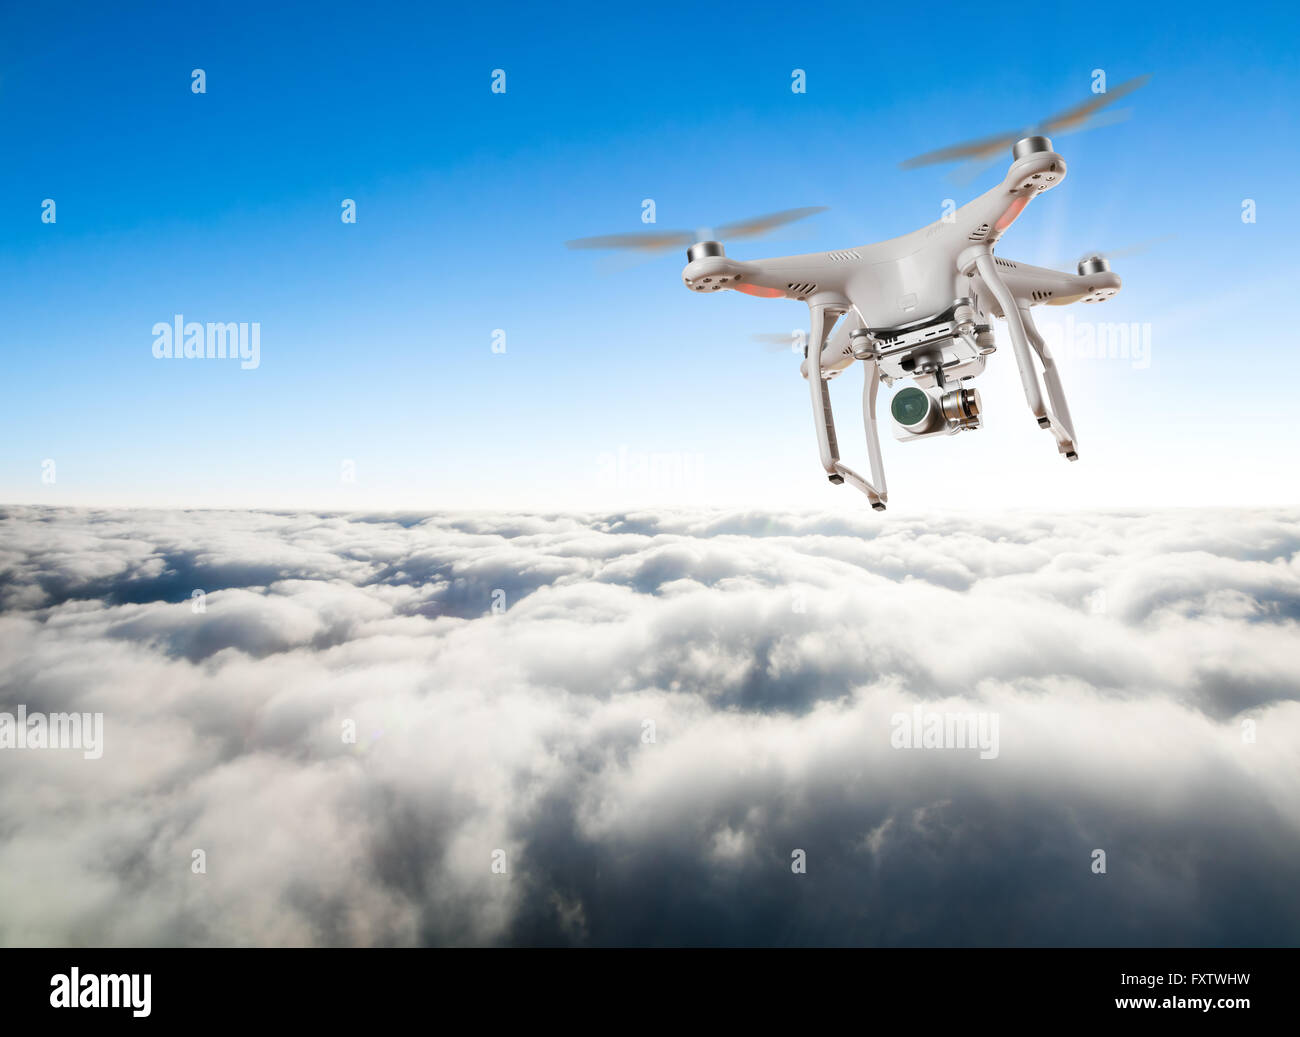 Drone for industrial works flying above clouds. Concept of pottential danger of aircraft collision - Stock Image